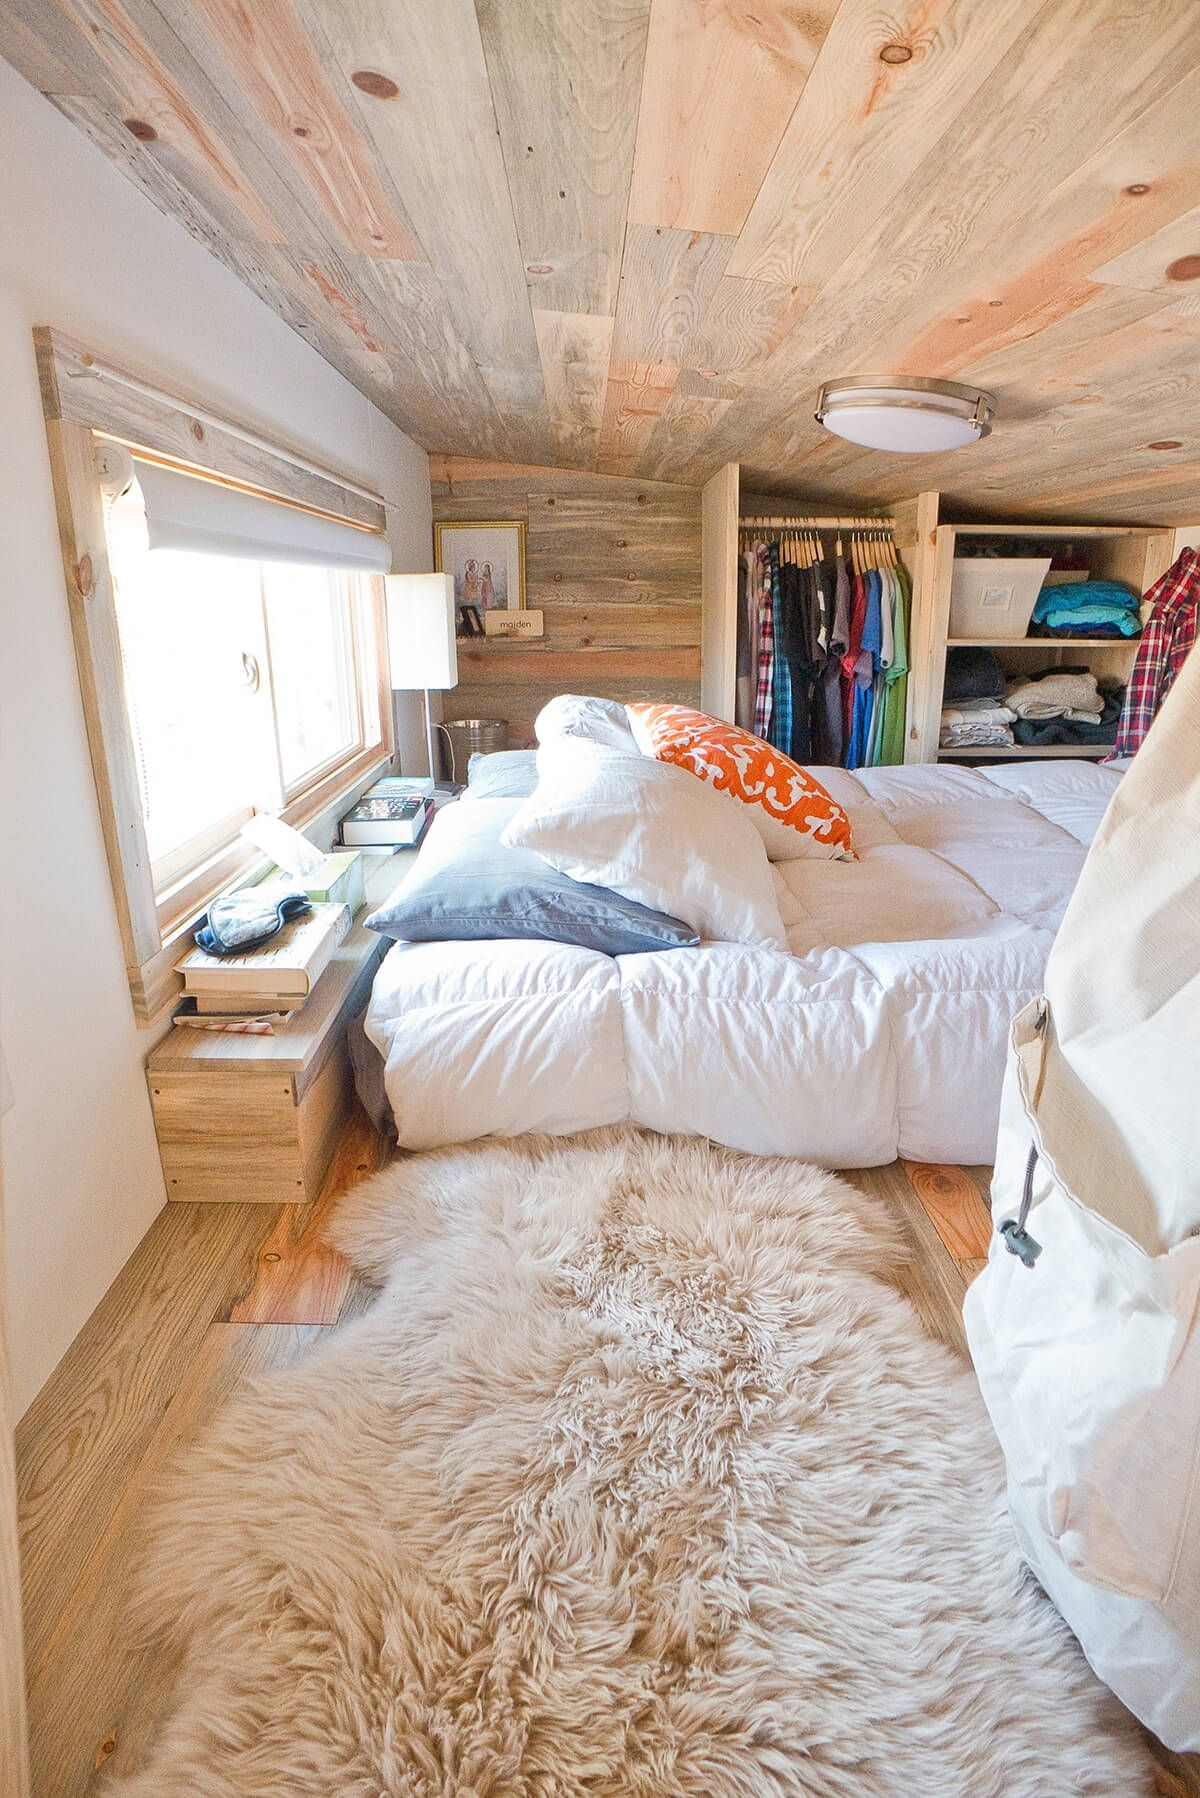 31 Small Space Ideas To Maximize Your Tiny Bedroom: 37 Small Bedroom Designs And Ideas For Maximizing Your Small Space (With Images)